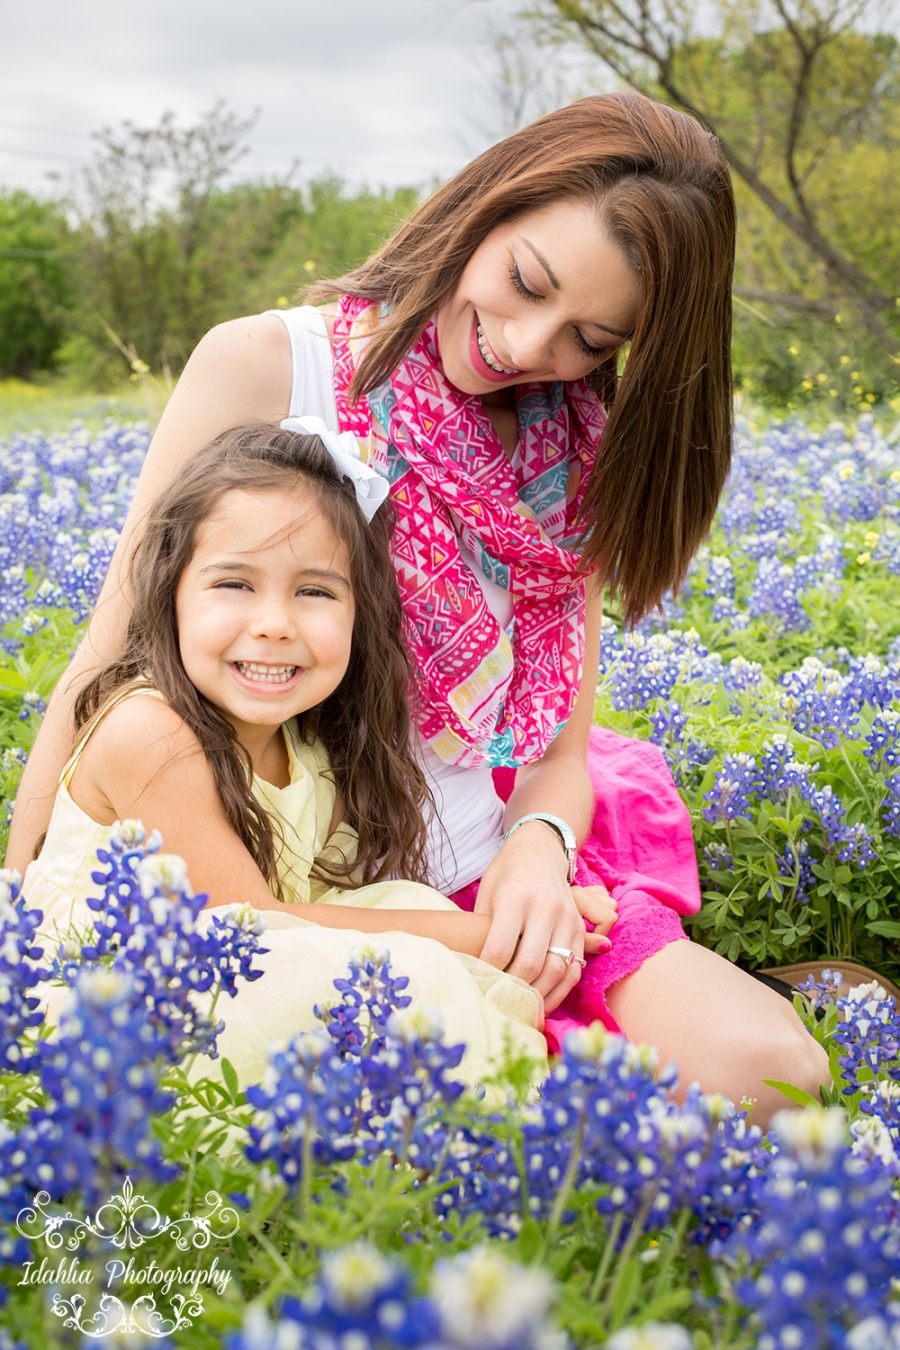 idahlia_photography_bluebonnets_C&E01